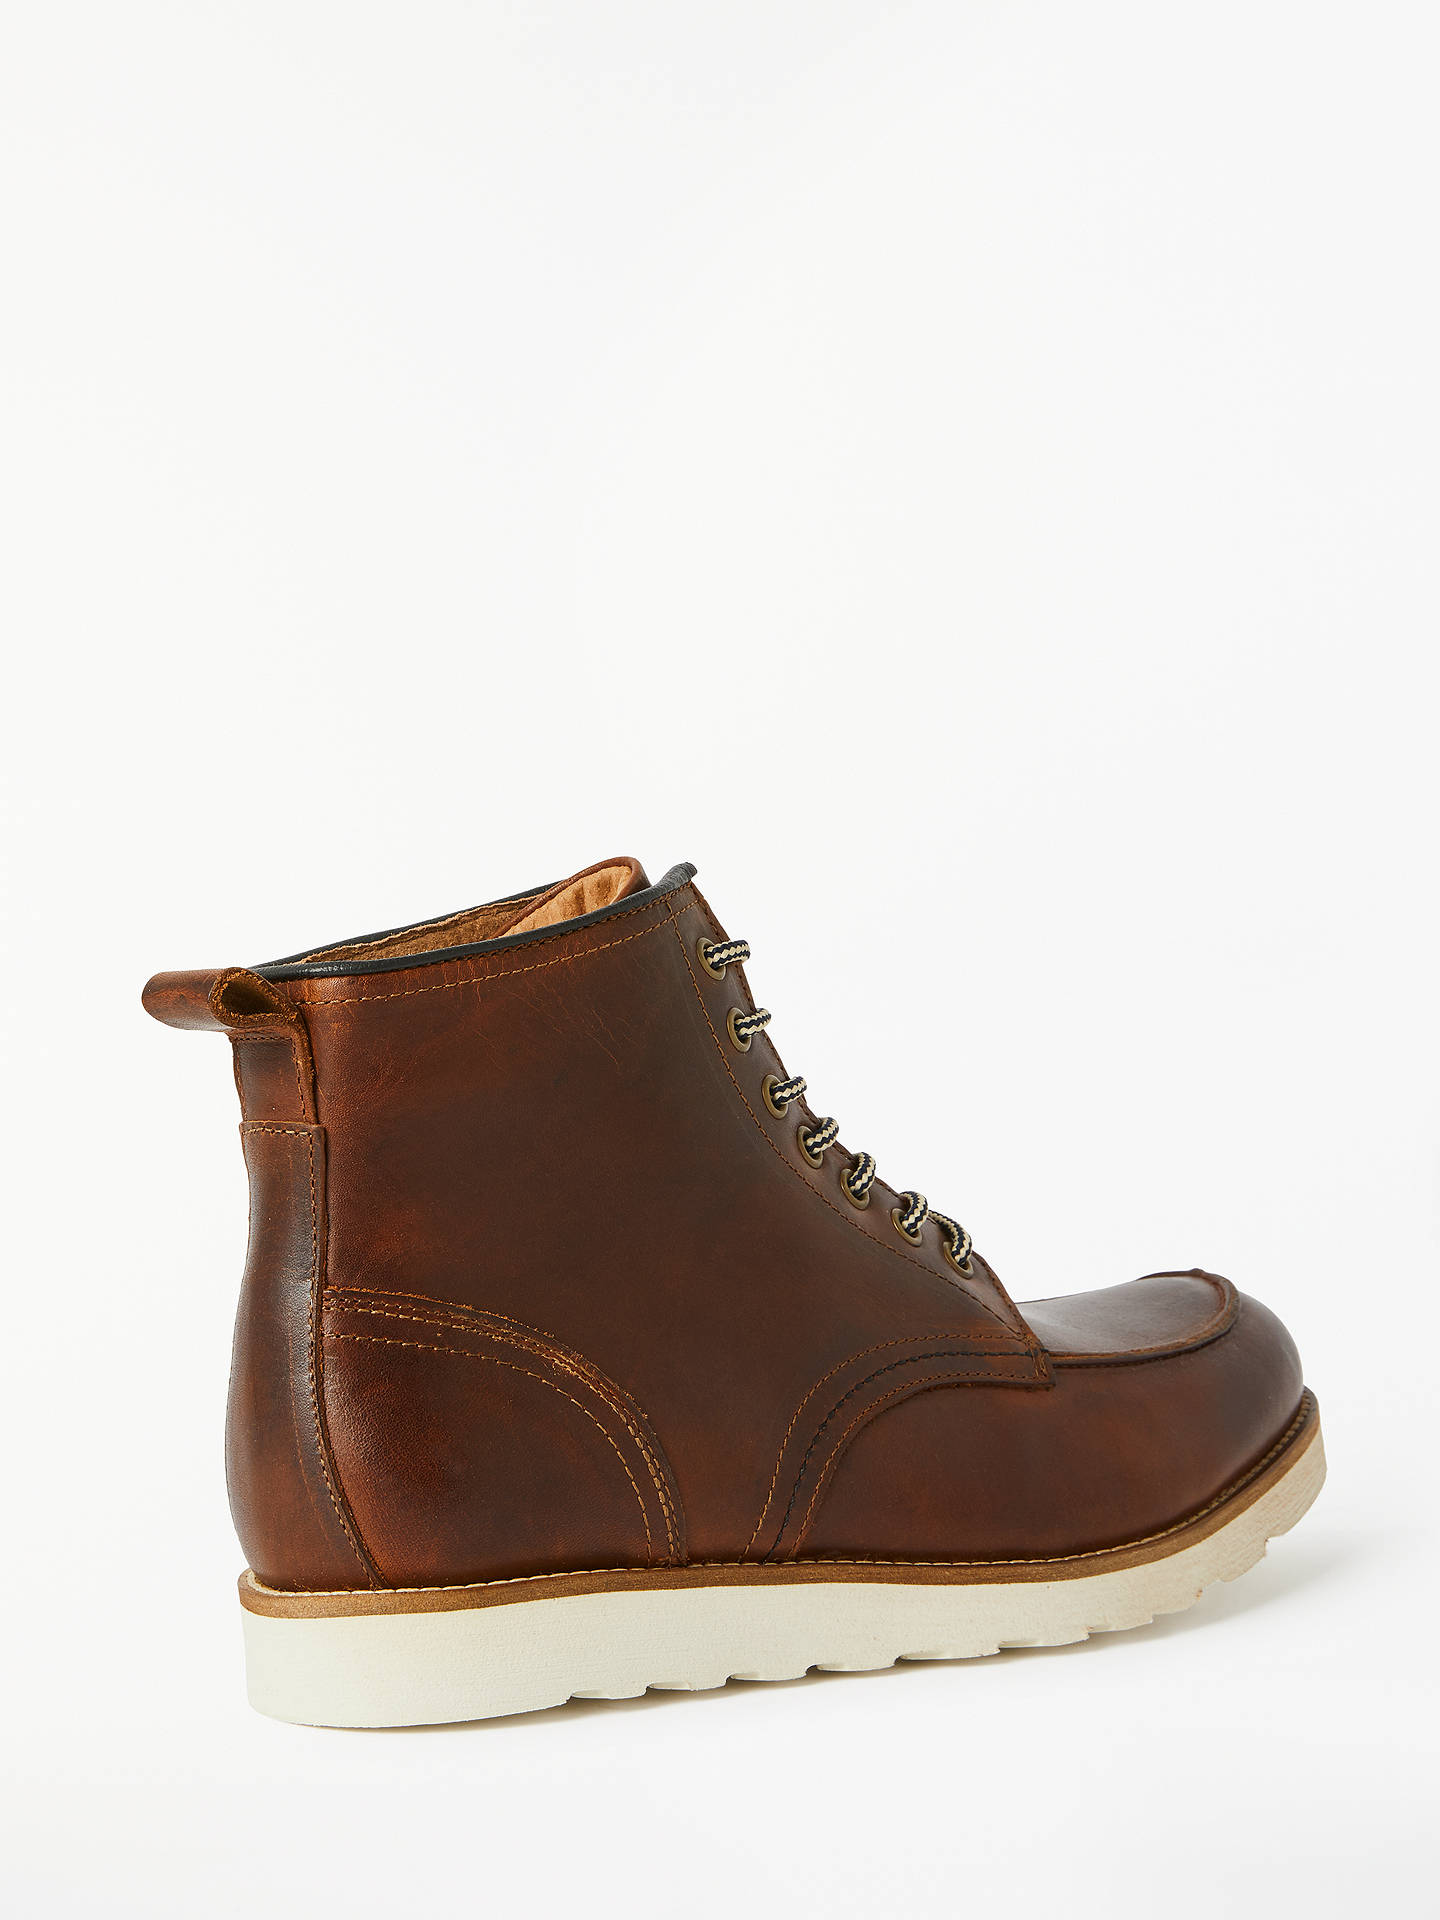 Buy John Lewis & Partners Moc Toe Boots, Brown, 11 Online at johnlewis.com